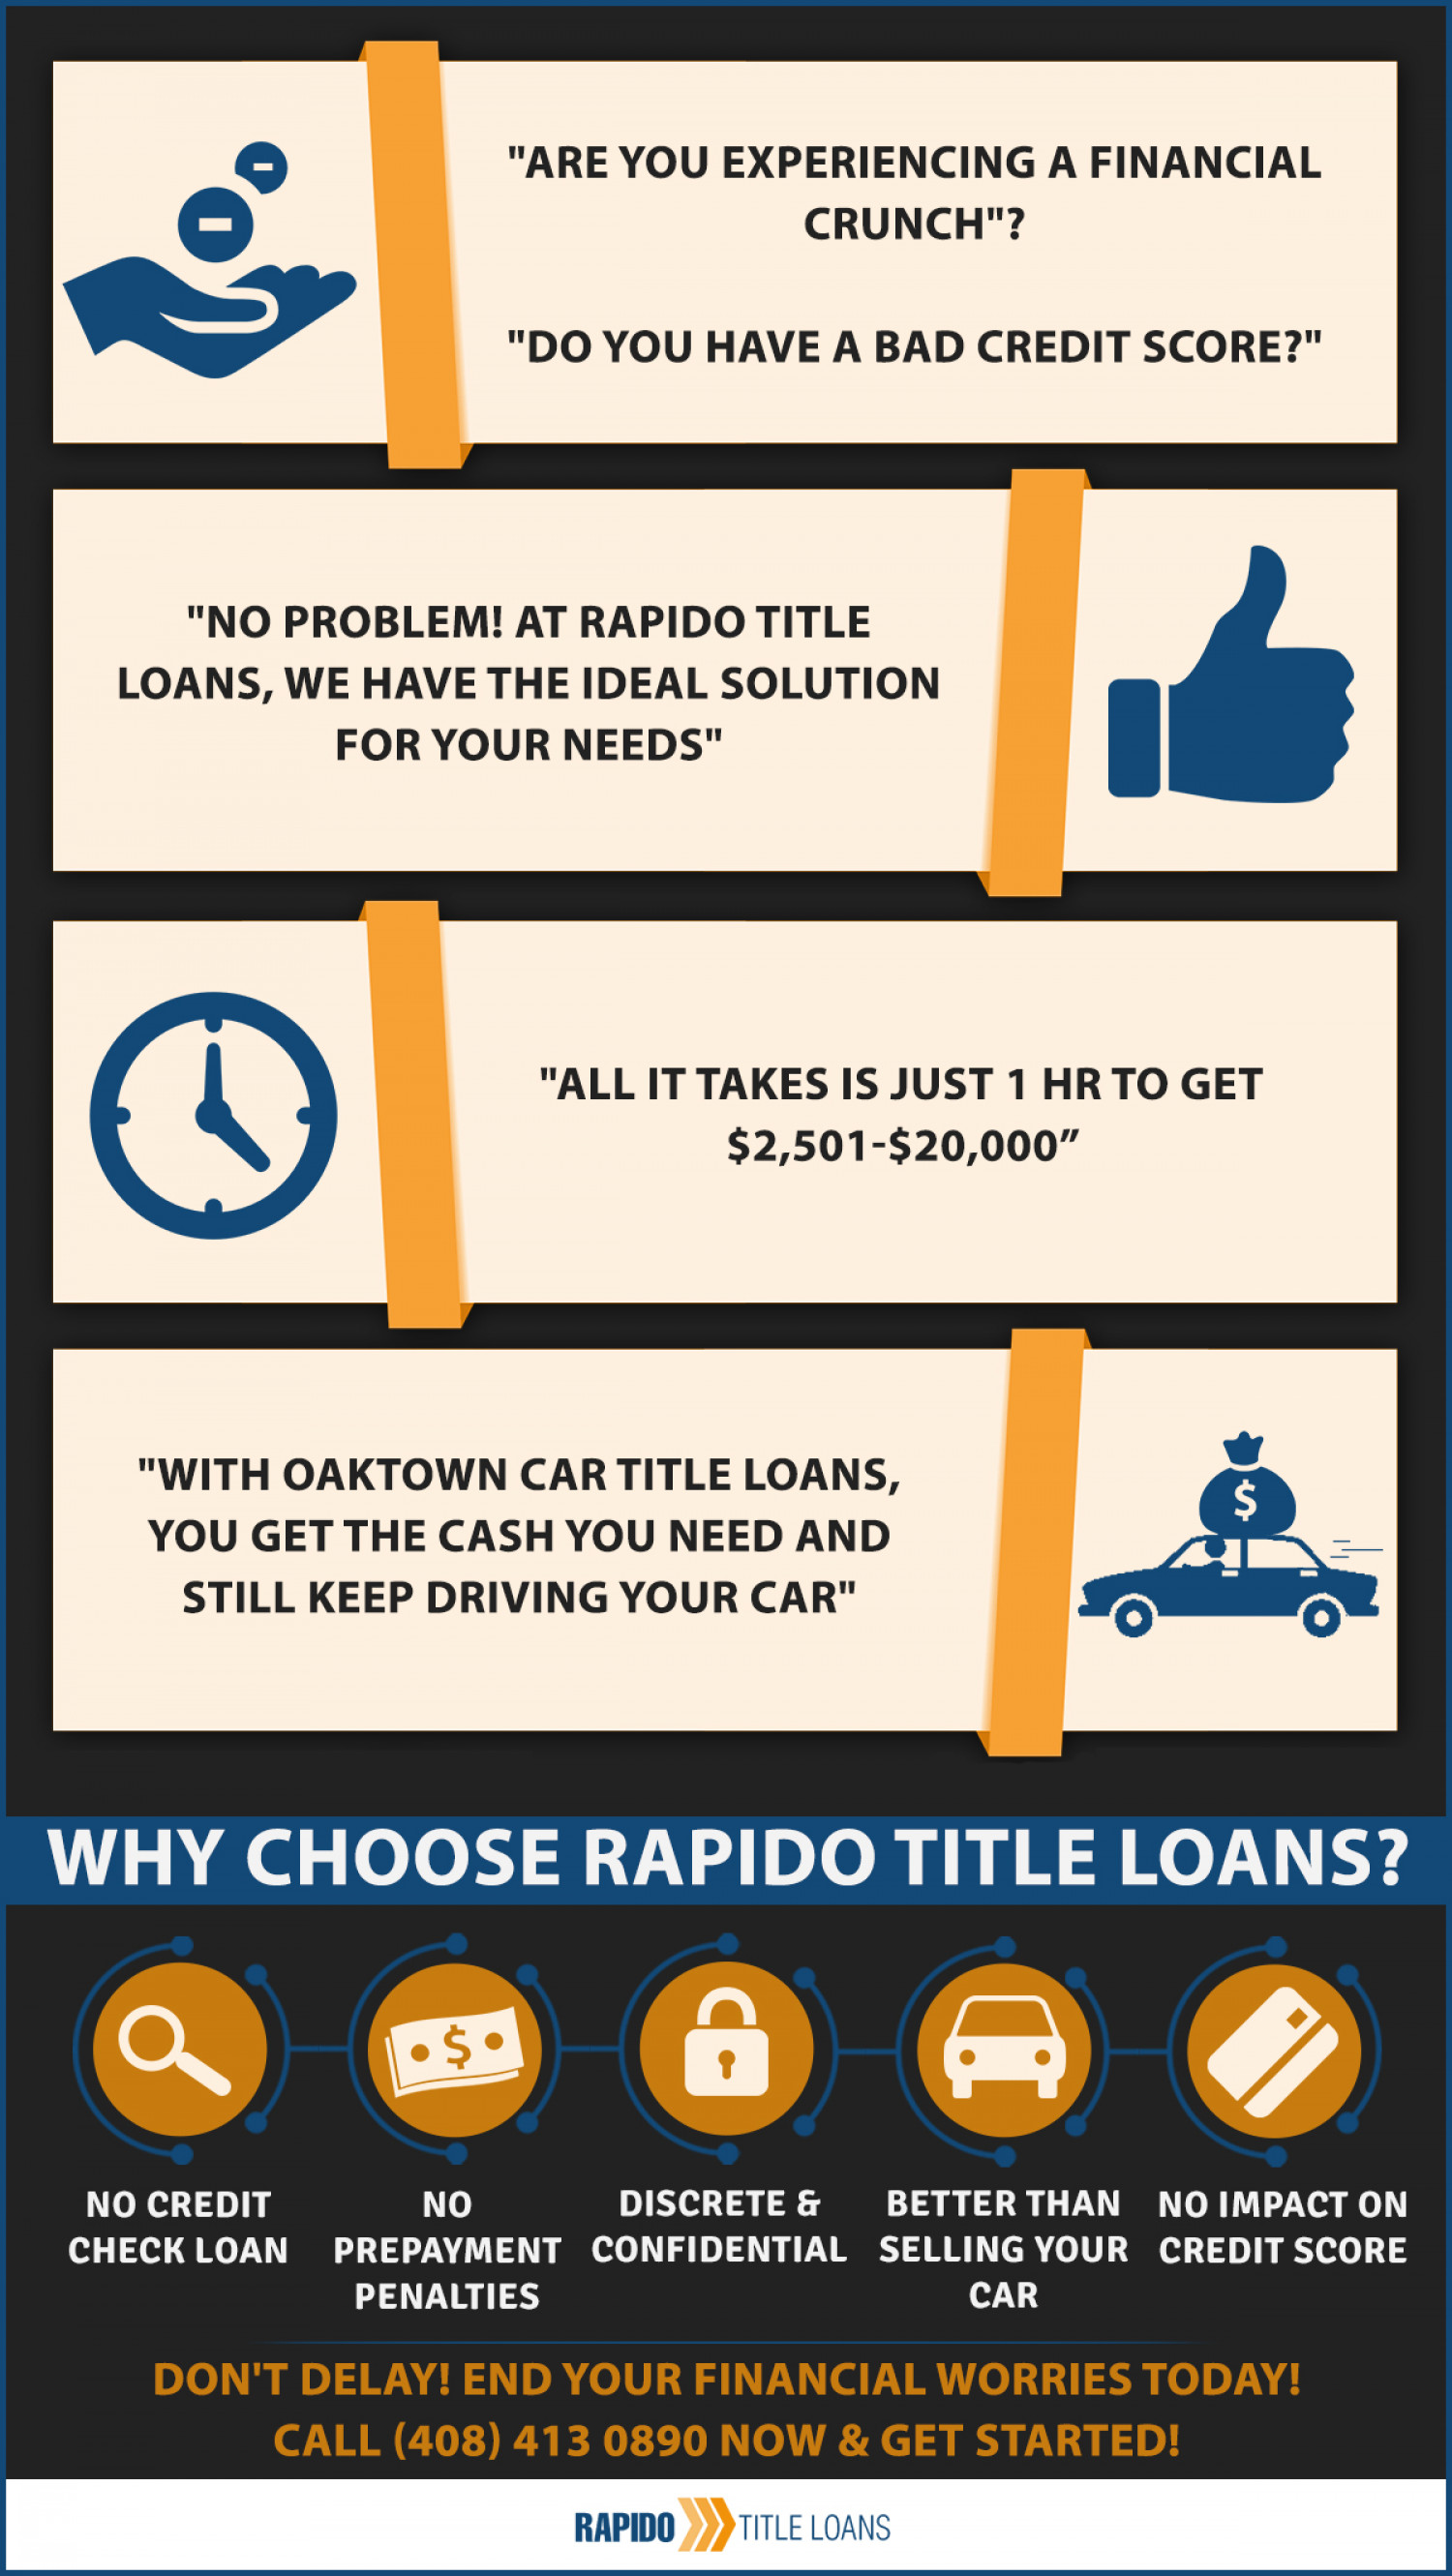 Are You Experiencing a Financial Crunch? Infographic